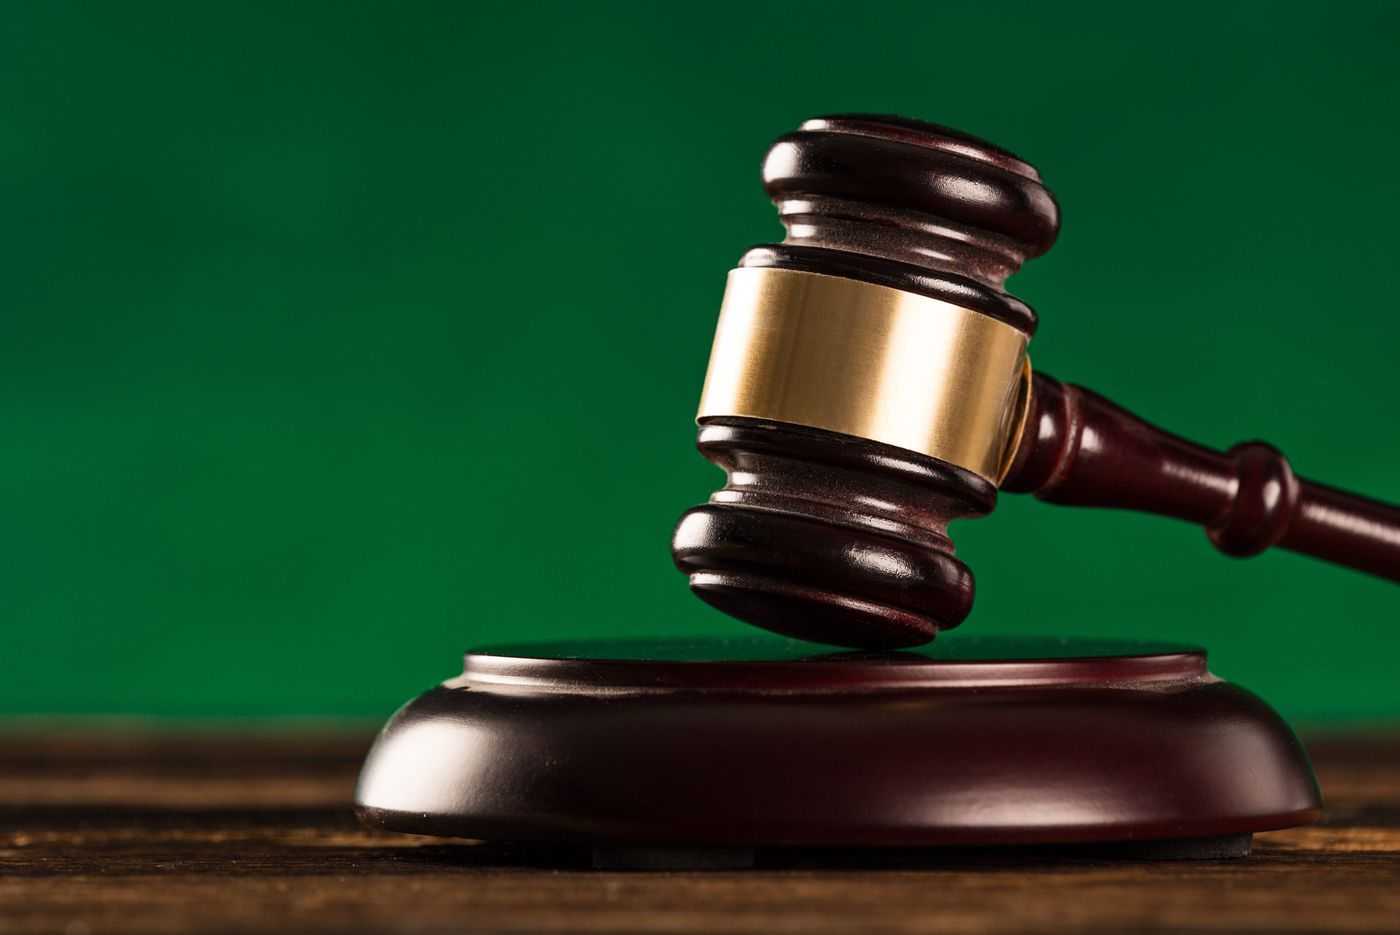 Delco 'habitual fraudster' admits to new stock fraud